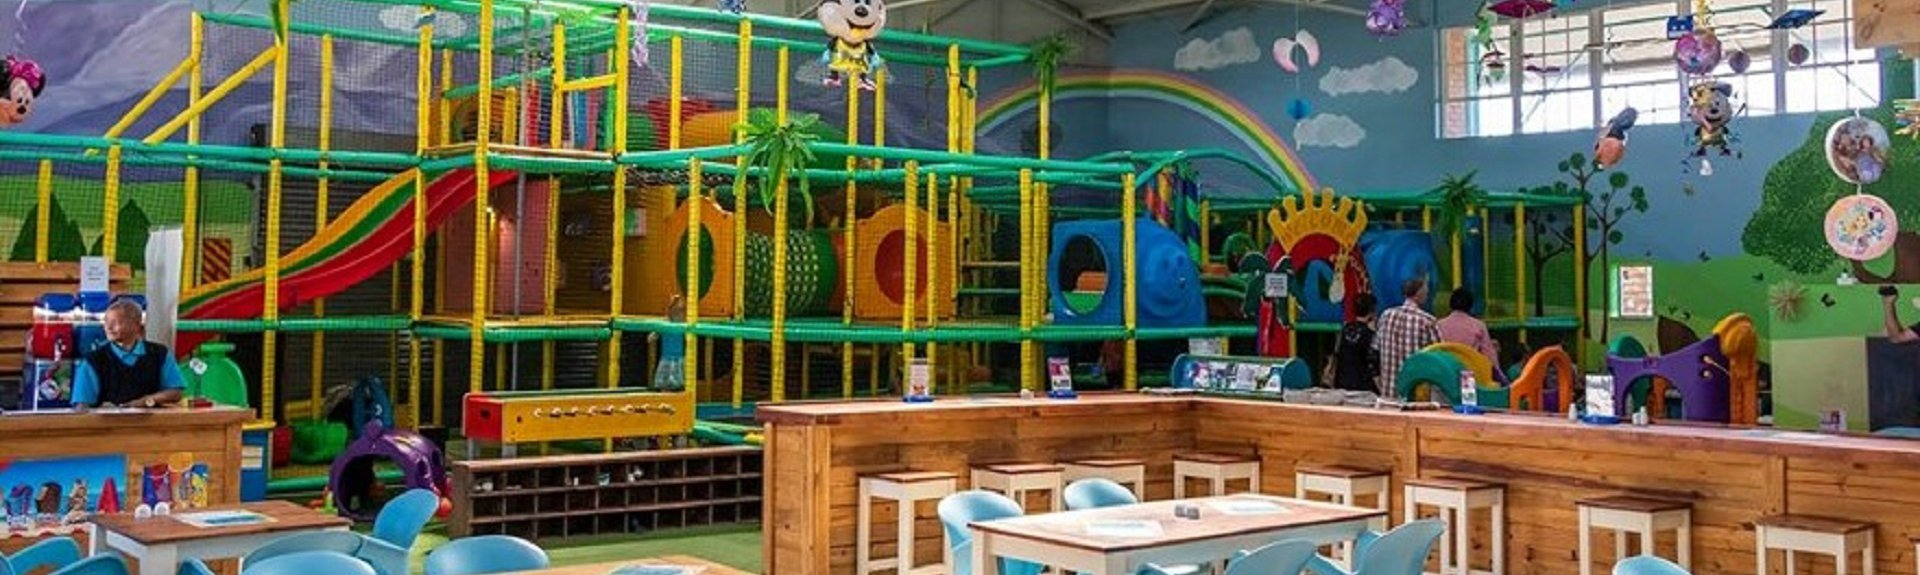 Happy Vally Kids Play Centre | Garden Route | Things to do With Kids